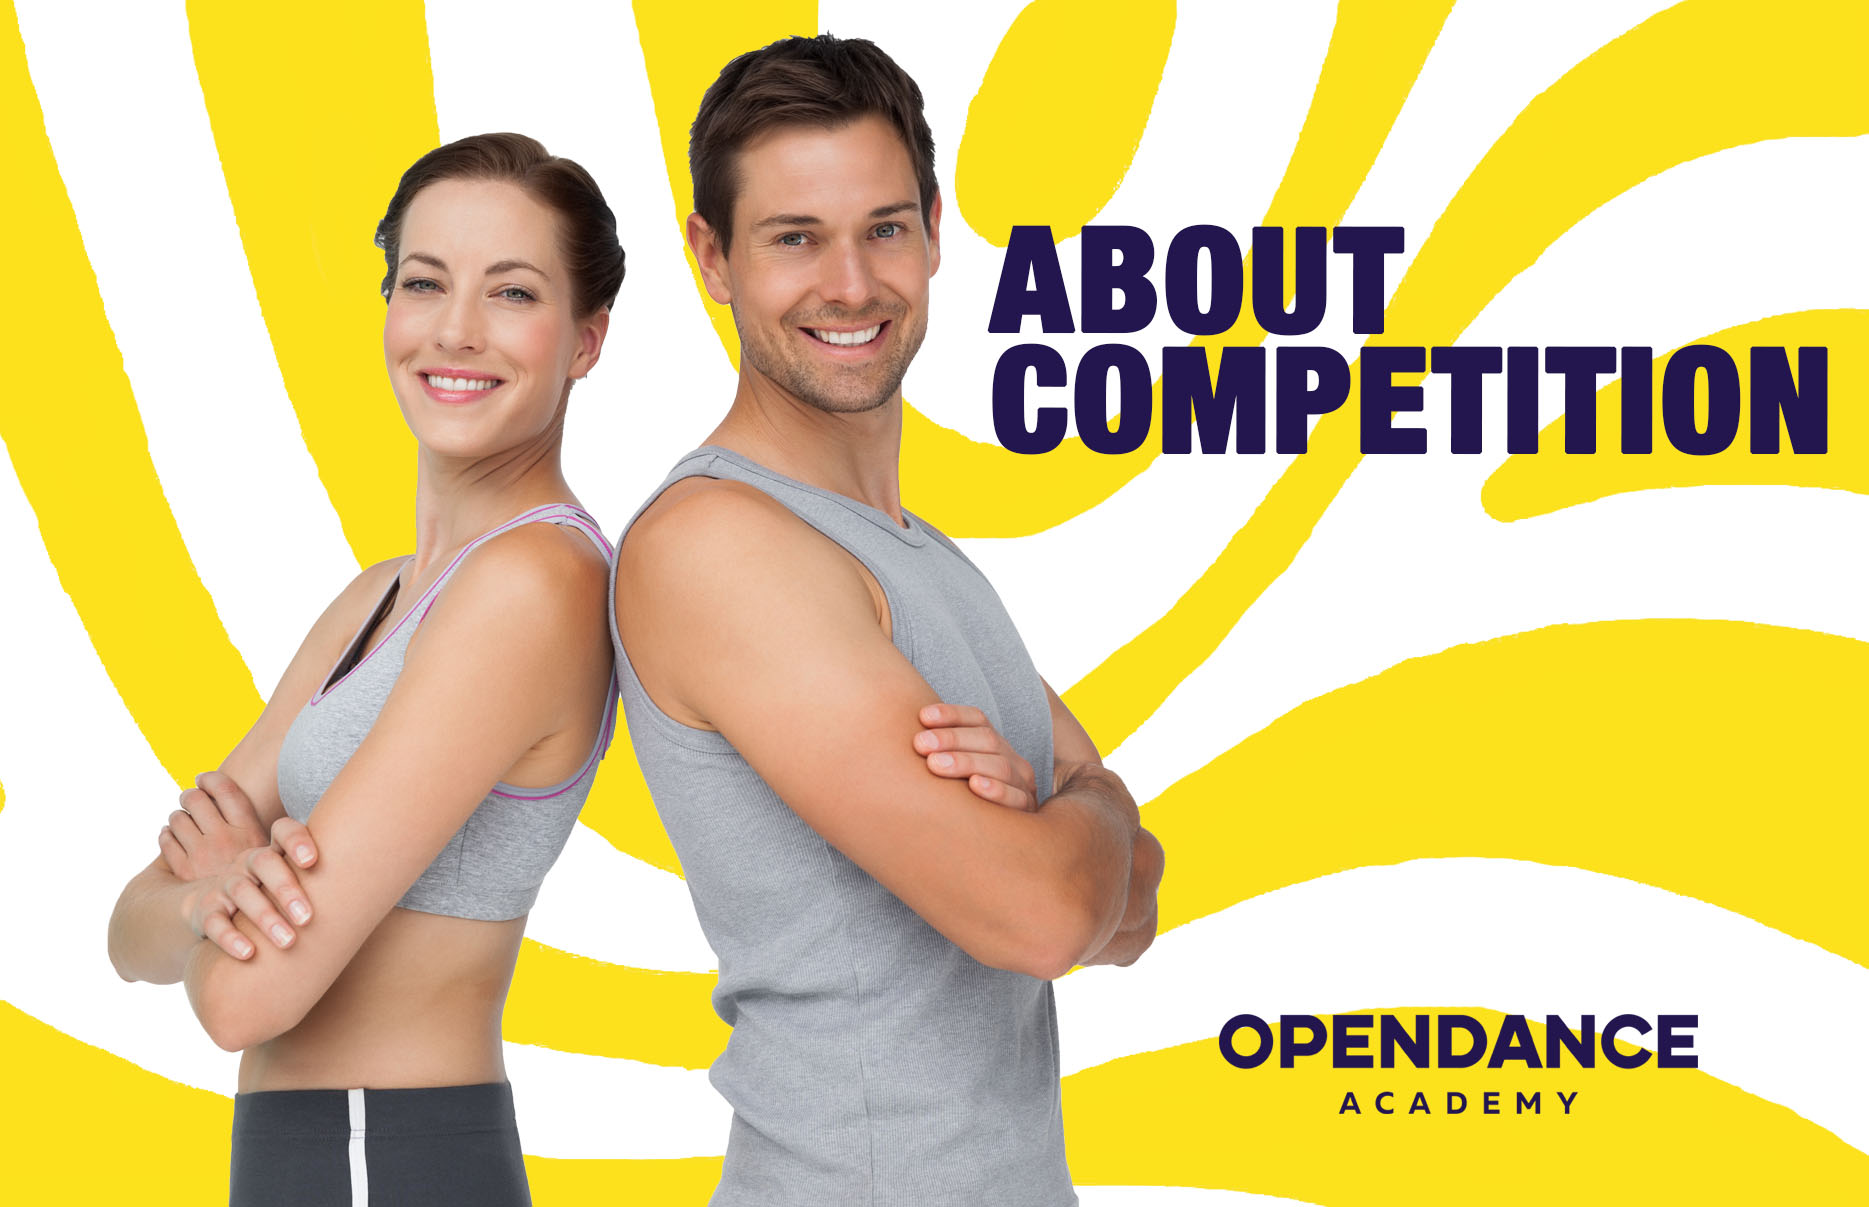 About Competition